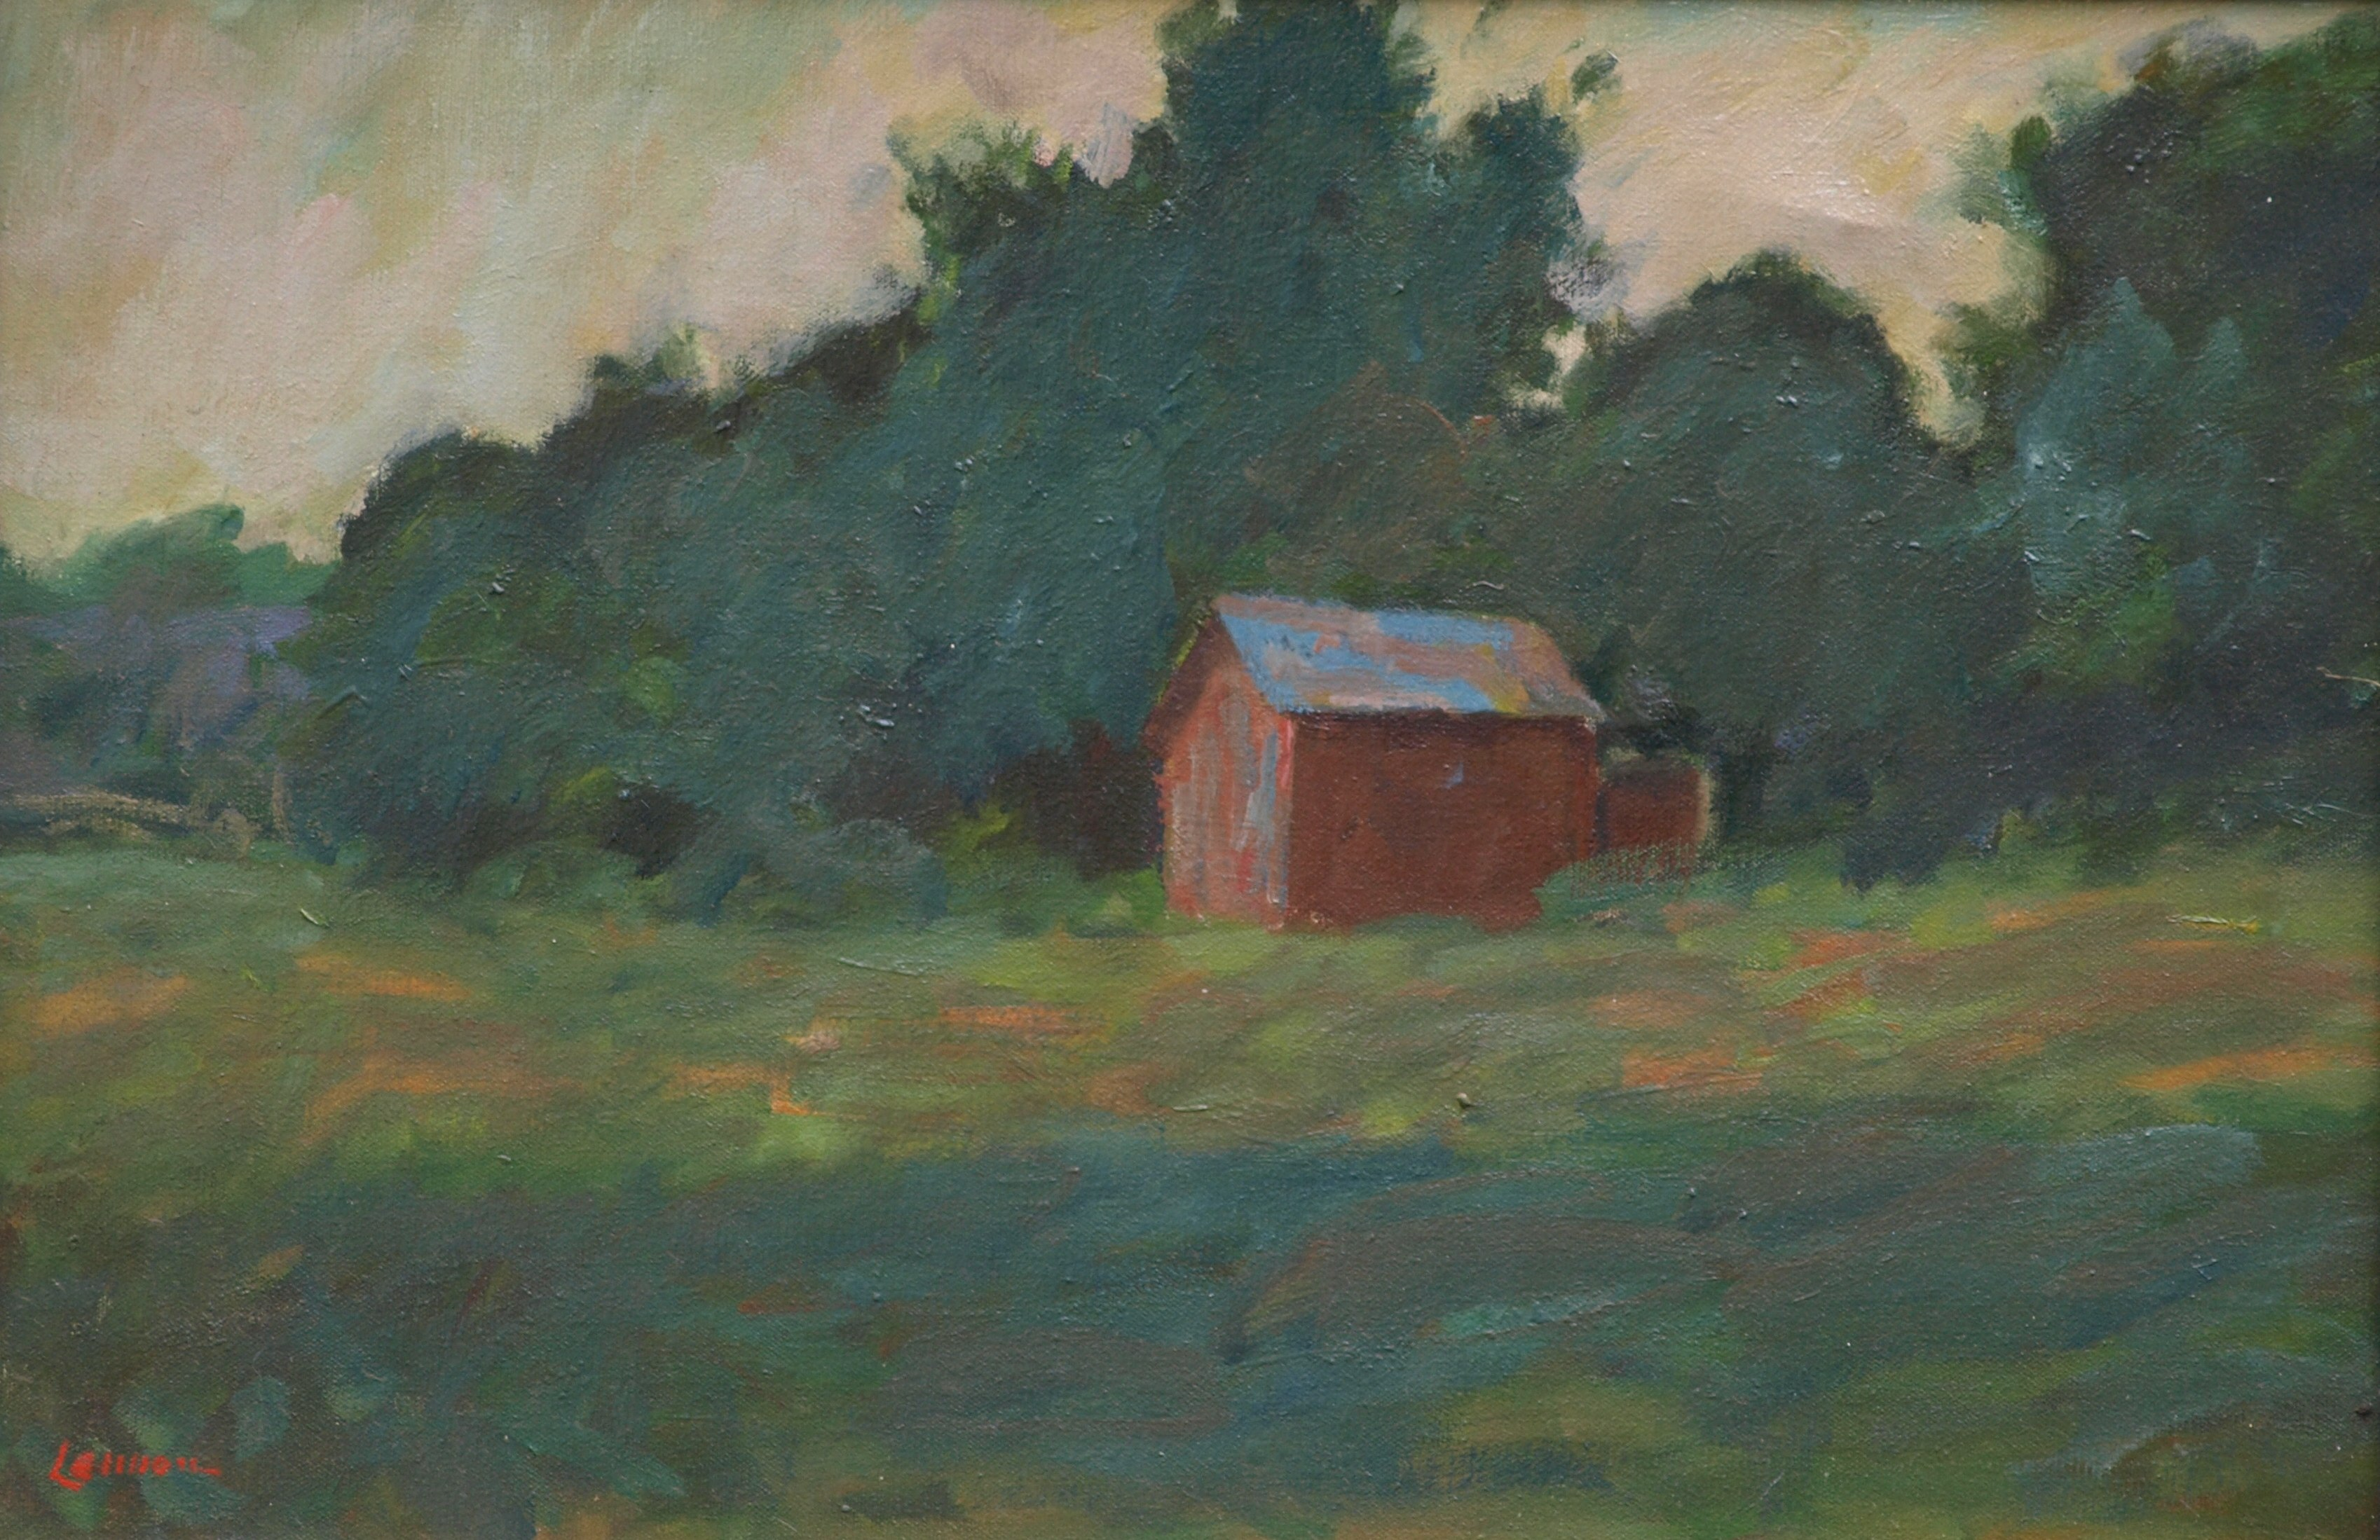 Lane's Barn, Oil on Canvas, 16 x 24 Inches, by Bernard Lennon, $650